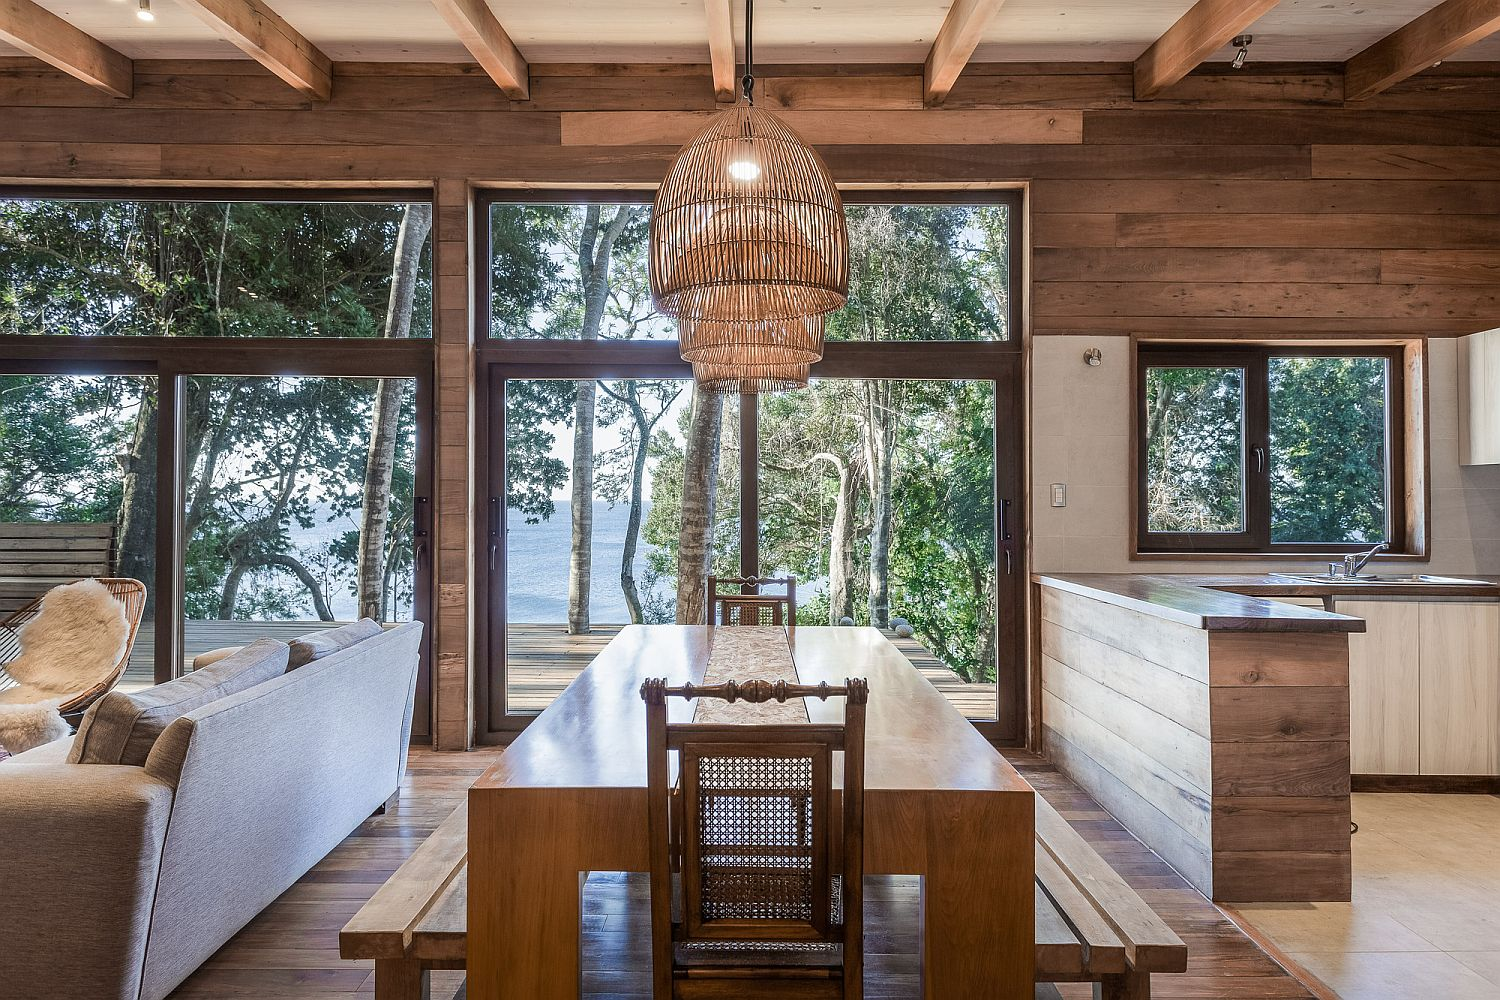 Amazing array of wooden surfaces take over inside the Chilean home